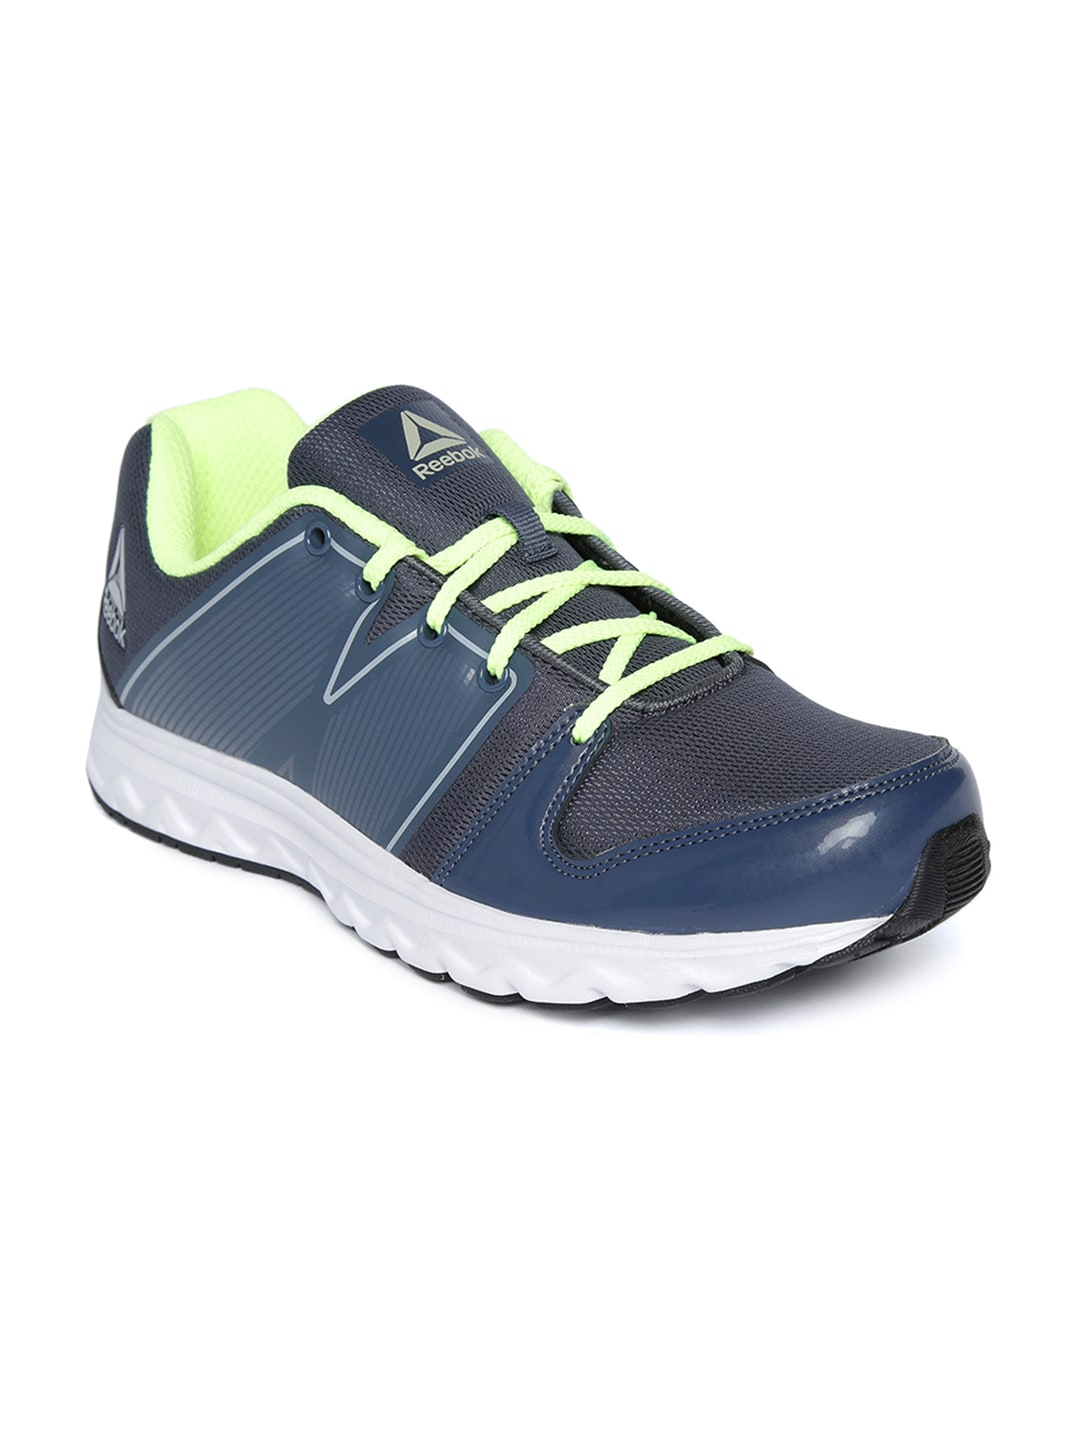 72e150960c1 Reebok Navy Blue Blue Sports Shoes - Buy Reebok Navy Blue Blue Sports Shoes  online in India